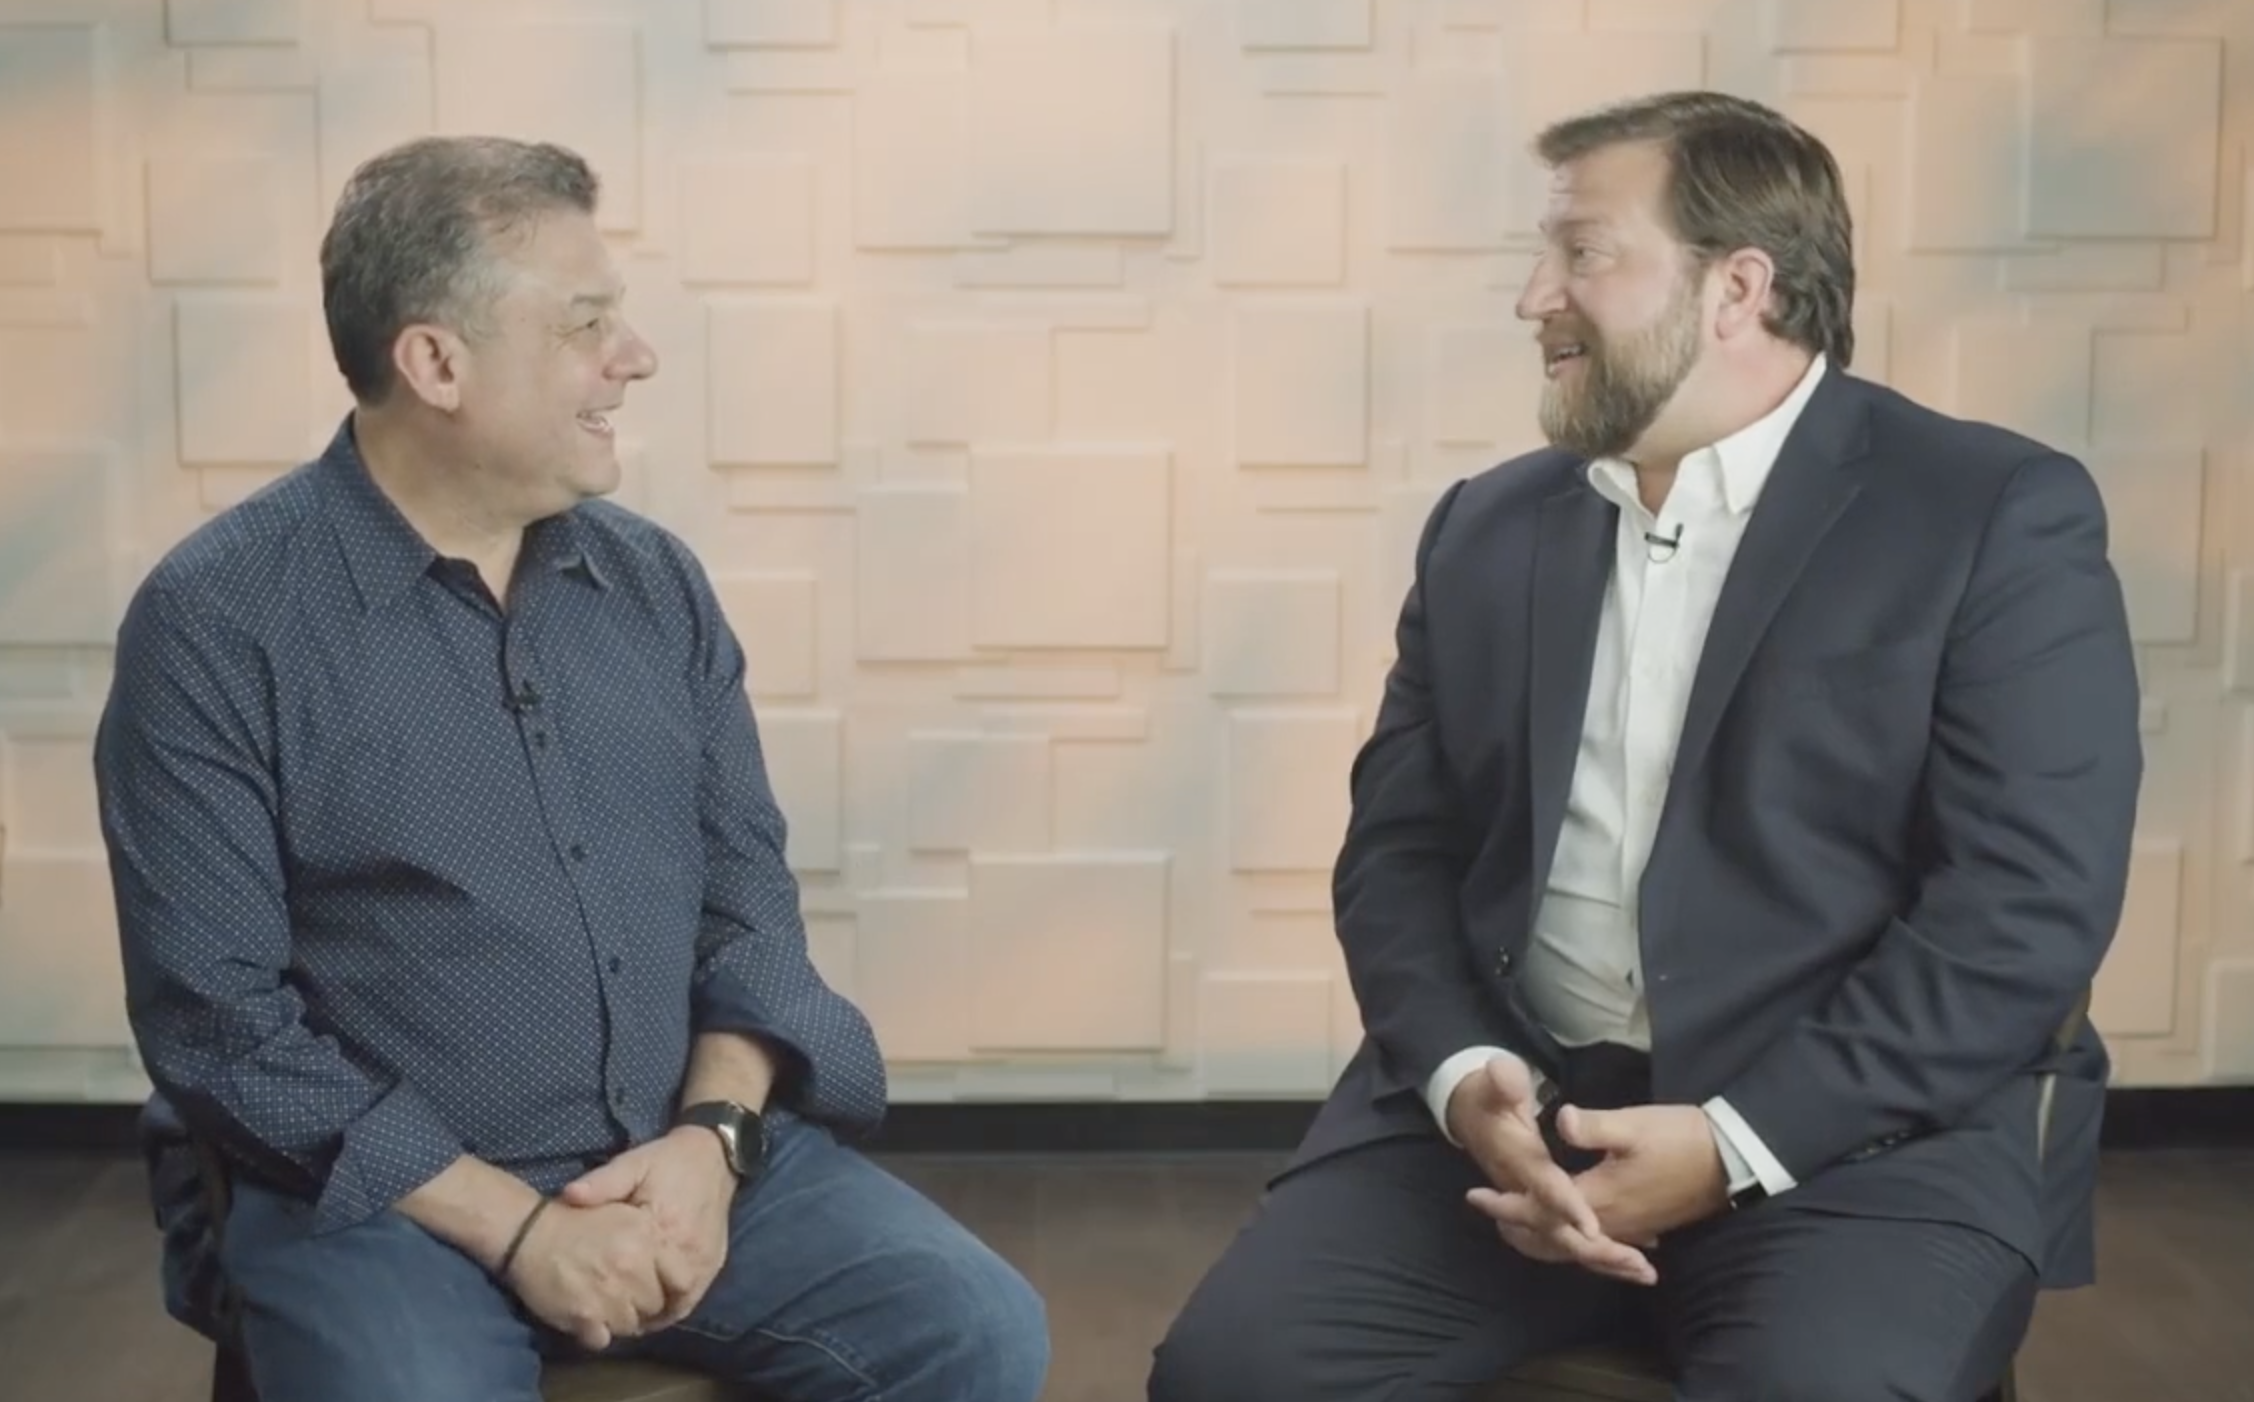 Rob Grimes & Niko Papademetriou Discuss Restaurant Technology